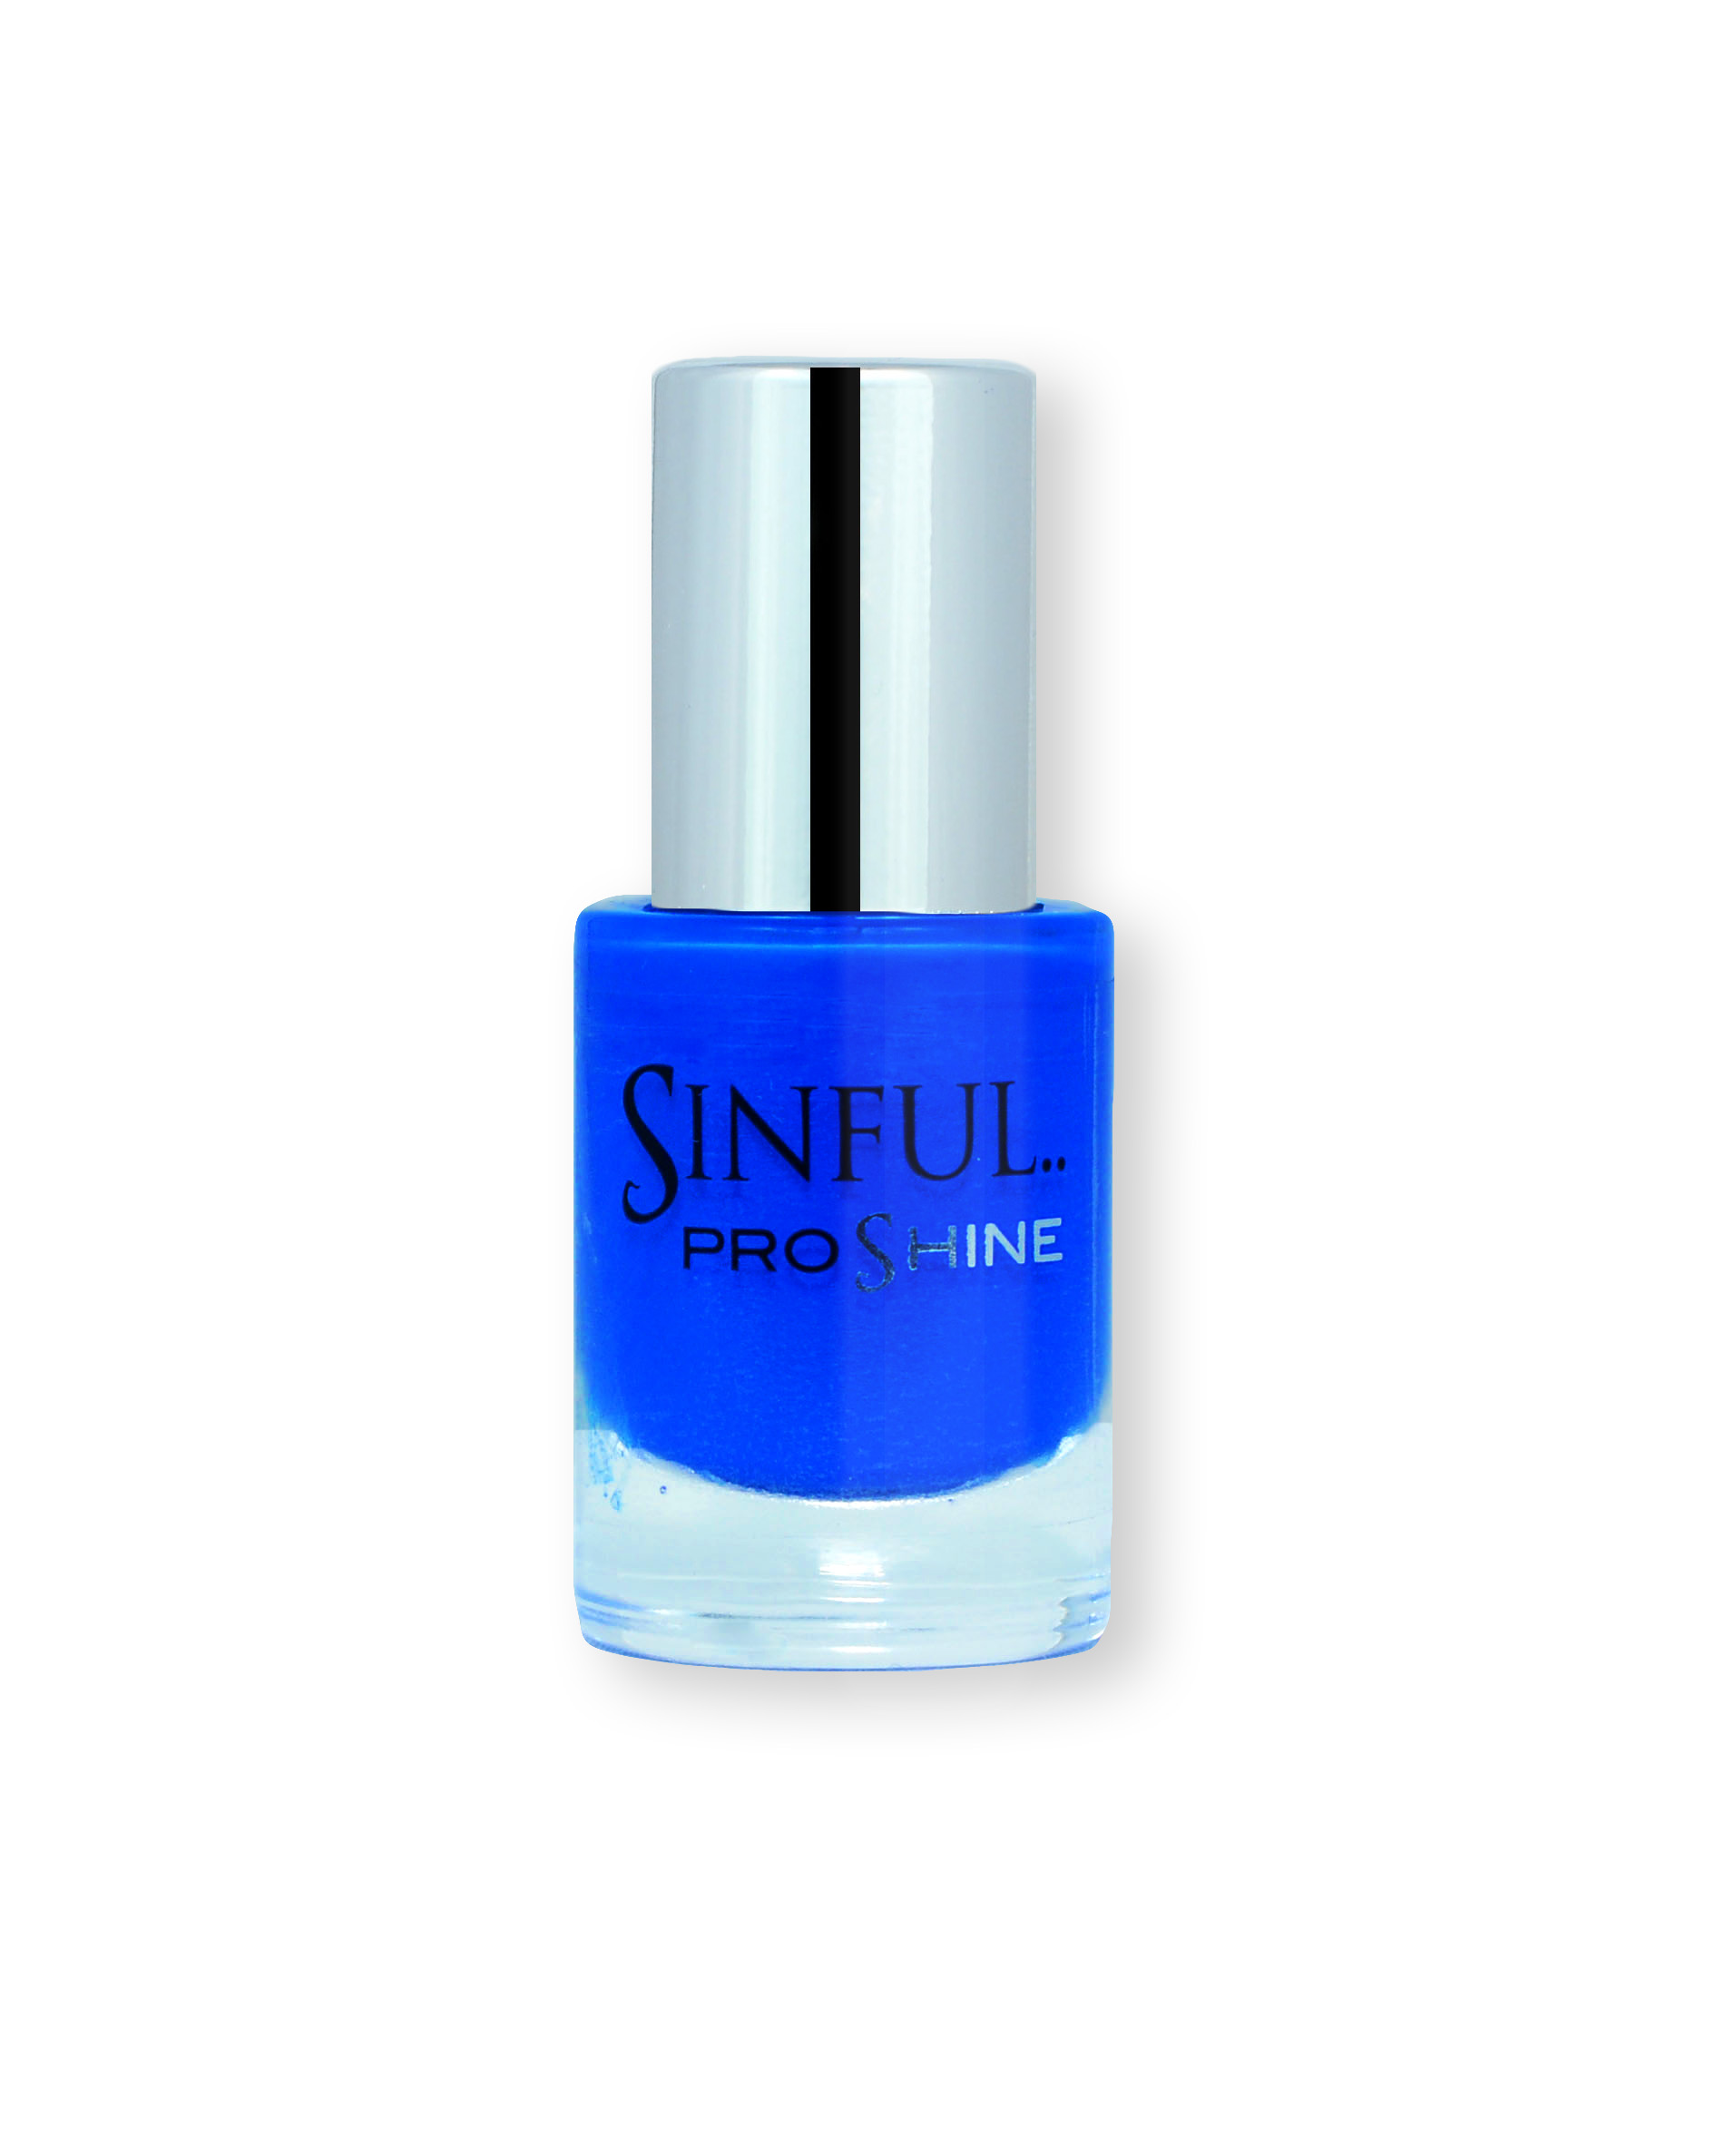 Sinful PROshine is a revolution into top spec imitation gel-like formula, easy application, full coverage and a sleek finish. Spoil yourself with the choice of 42 shades, expertly formulated with the finest grade of pigments. Toy Boy: Intense cobalt blue with a creme finish